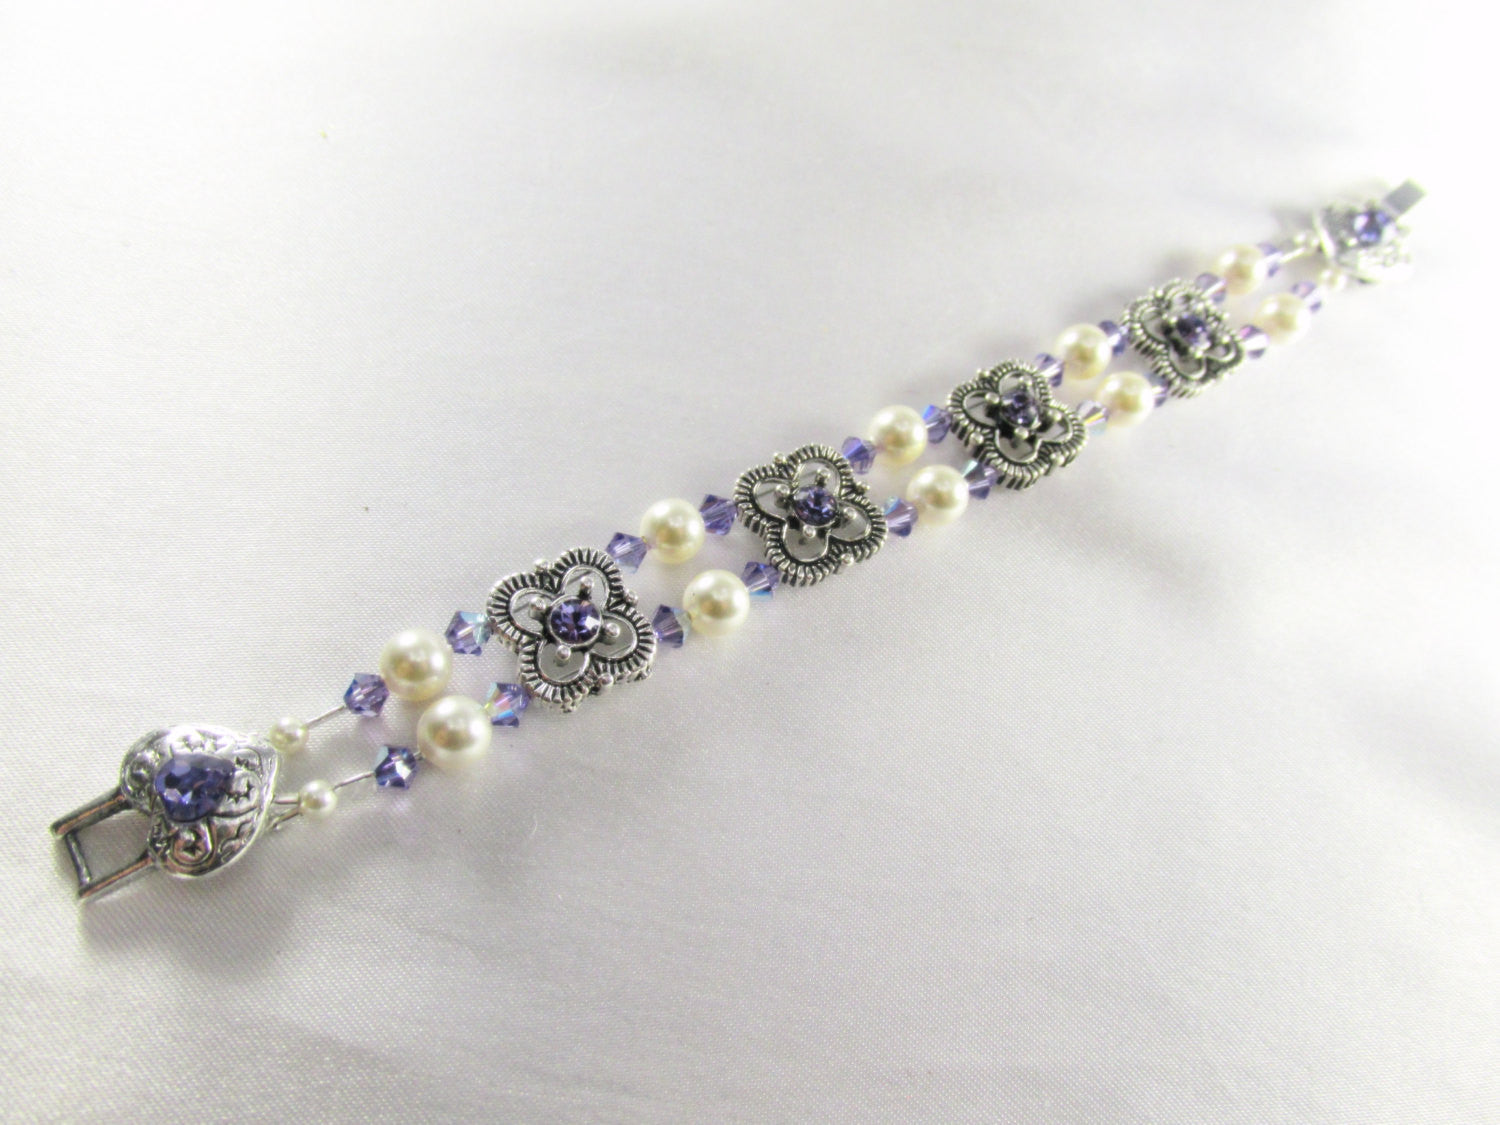 Swarovski Purple Tanzanite Small Bridal Bracelet in Antique Sterling Silver with Heart Clasp - Odyssey Creations